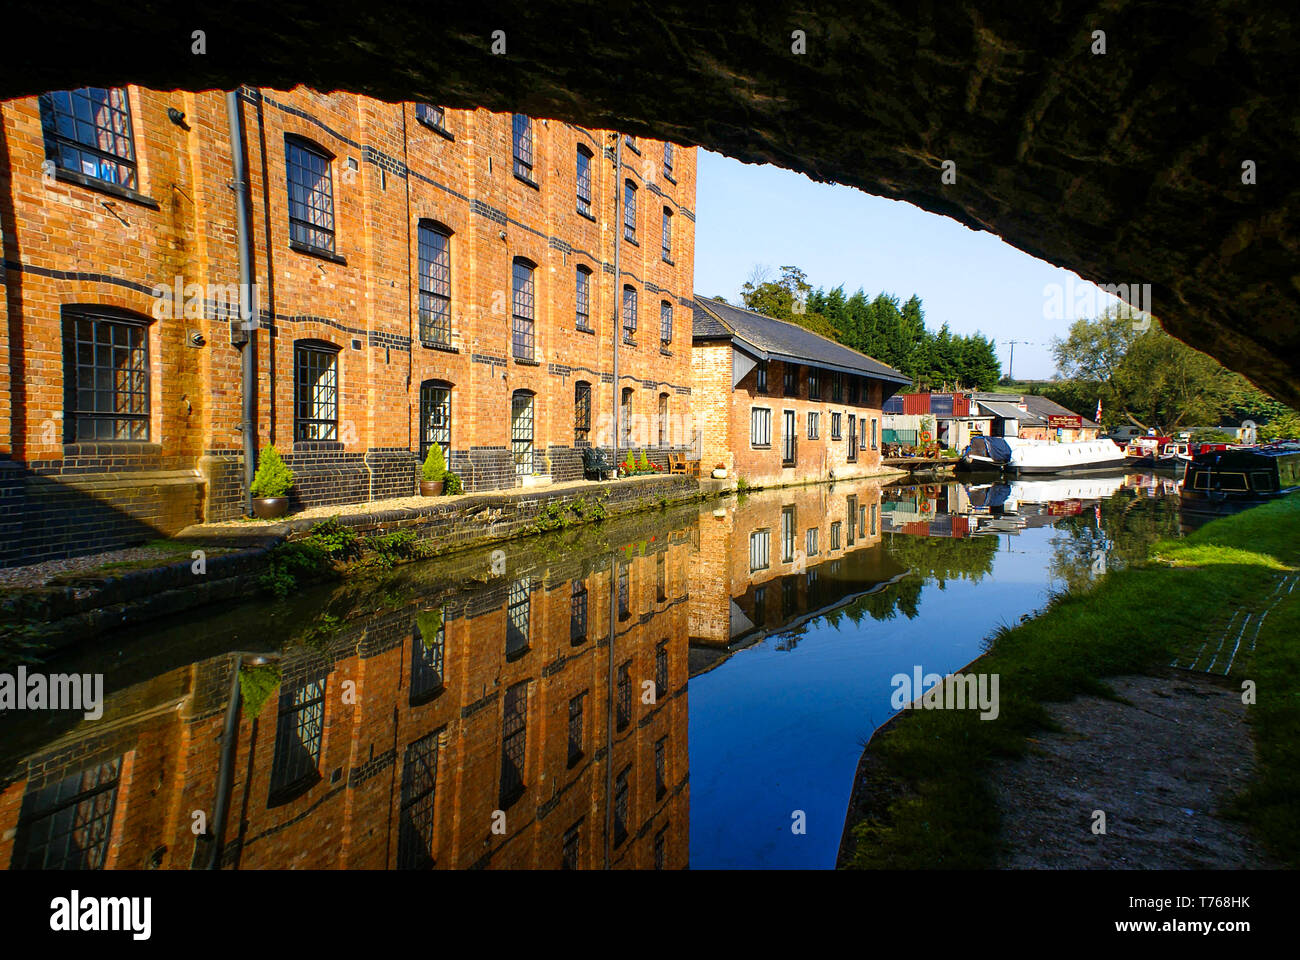 Looking along the Grand Union Canal from under tunnel at Blisworth. - Stock Image